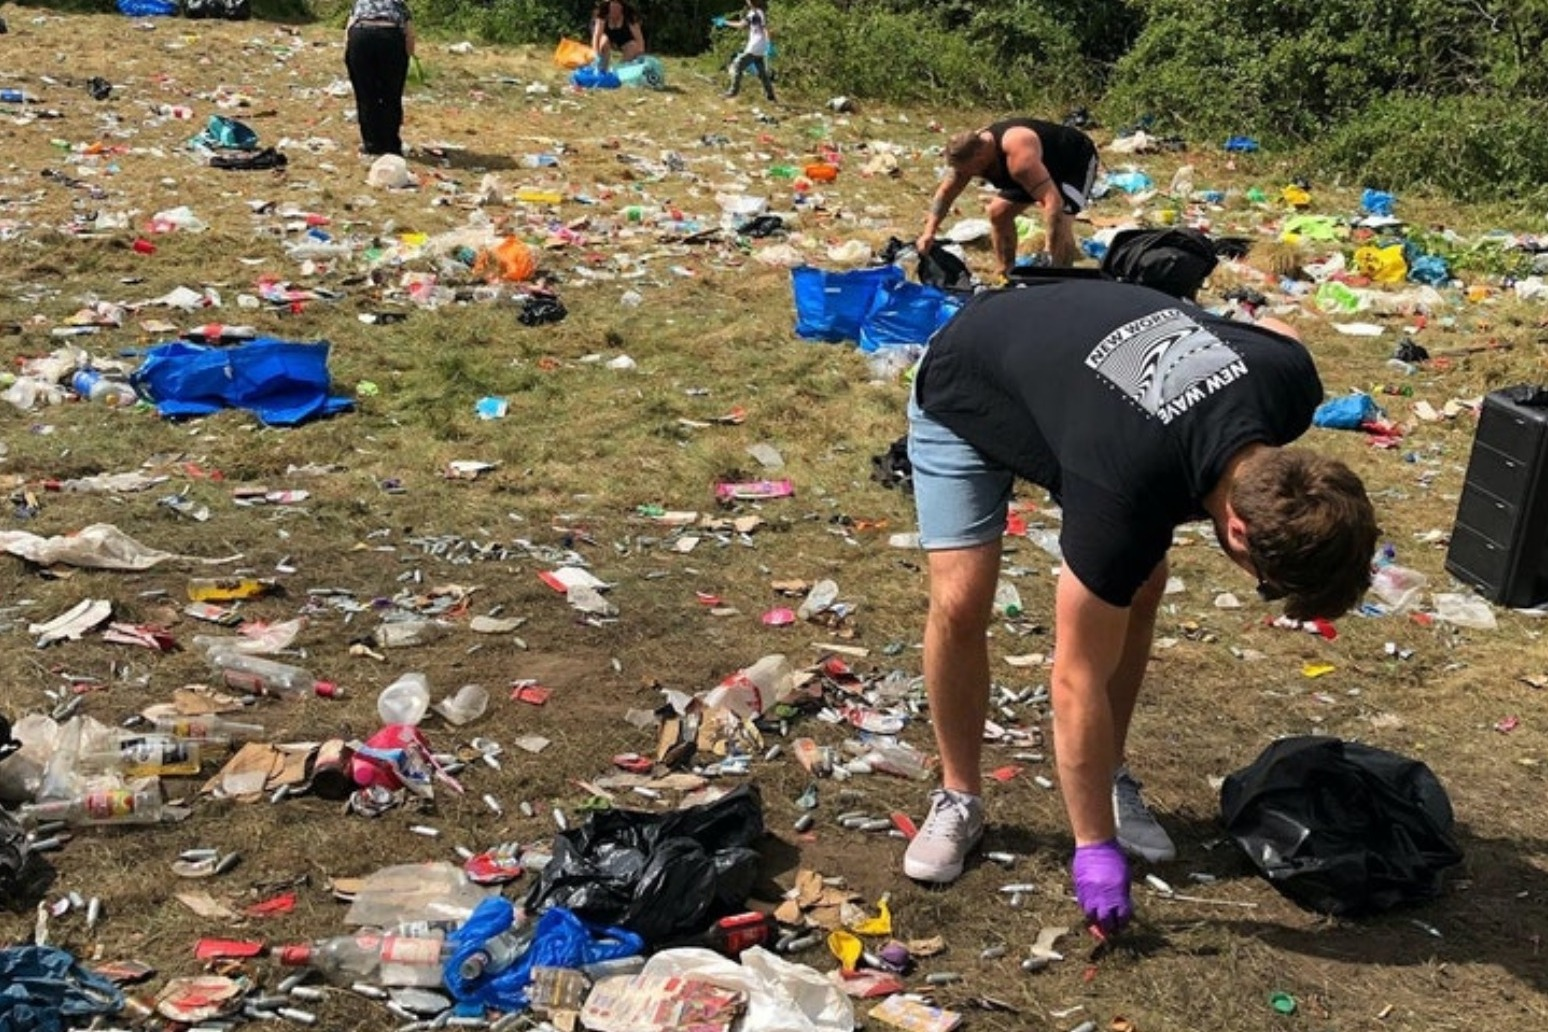 Police urge revellers not to attend illegal raves